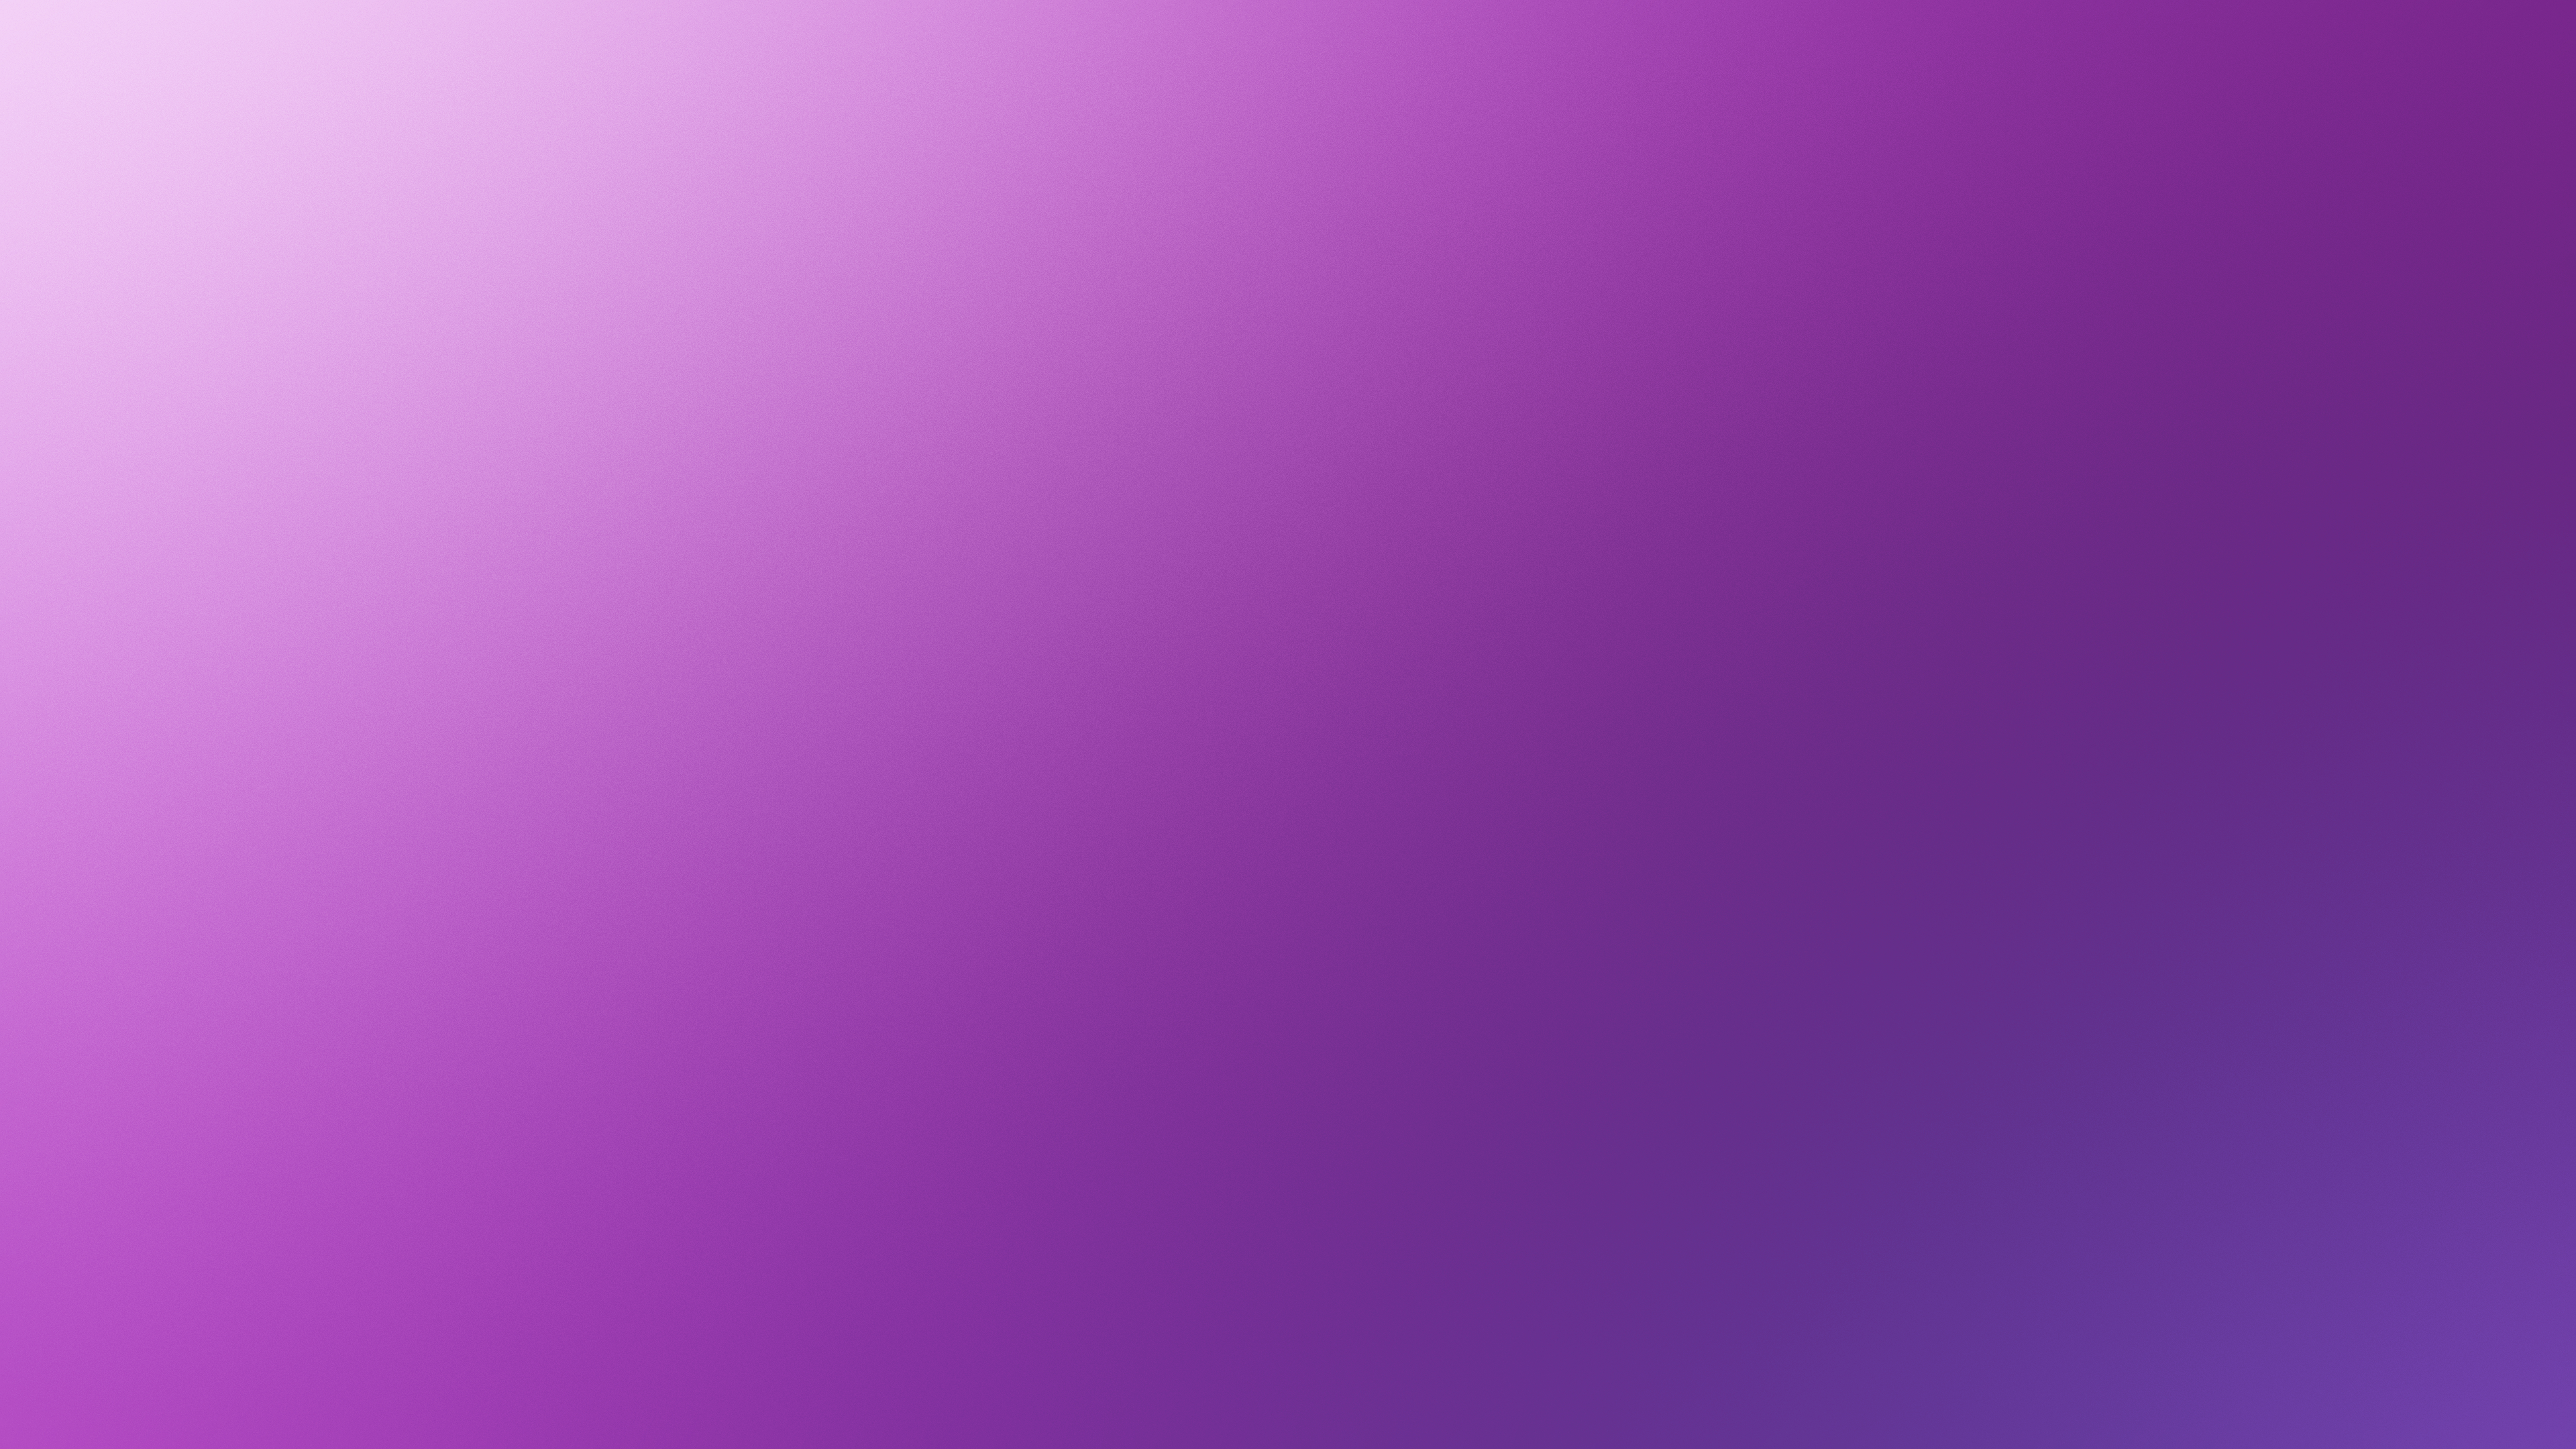 Purple Gradient 4K20810107 - Purple Gradient 4K - Purple, Gradient, Fruit